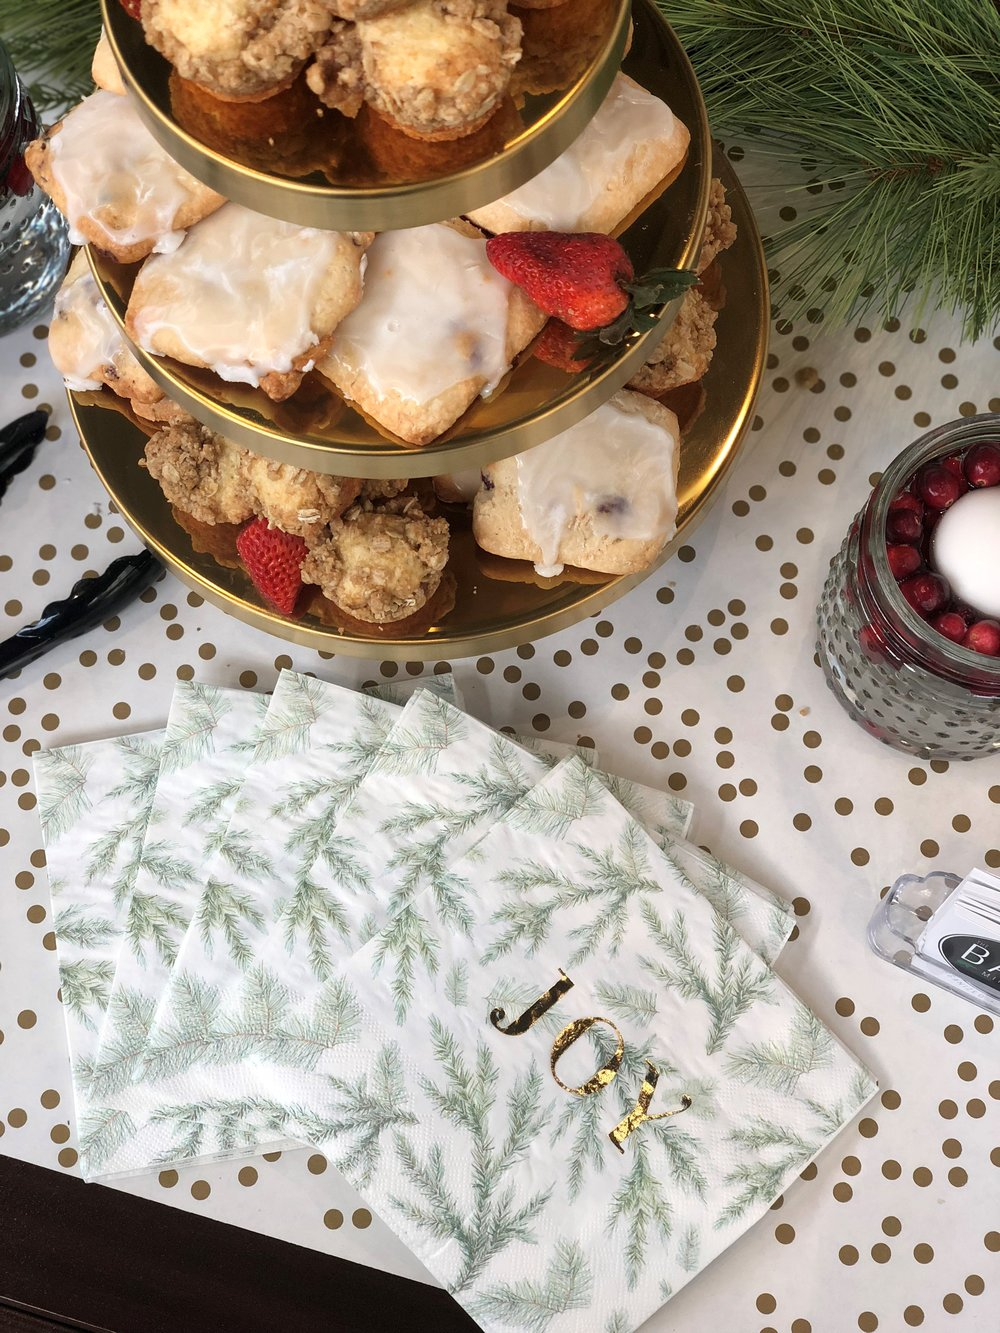 Treat yourself to some holiday goodies while you write up your holiday checklist.